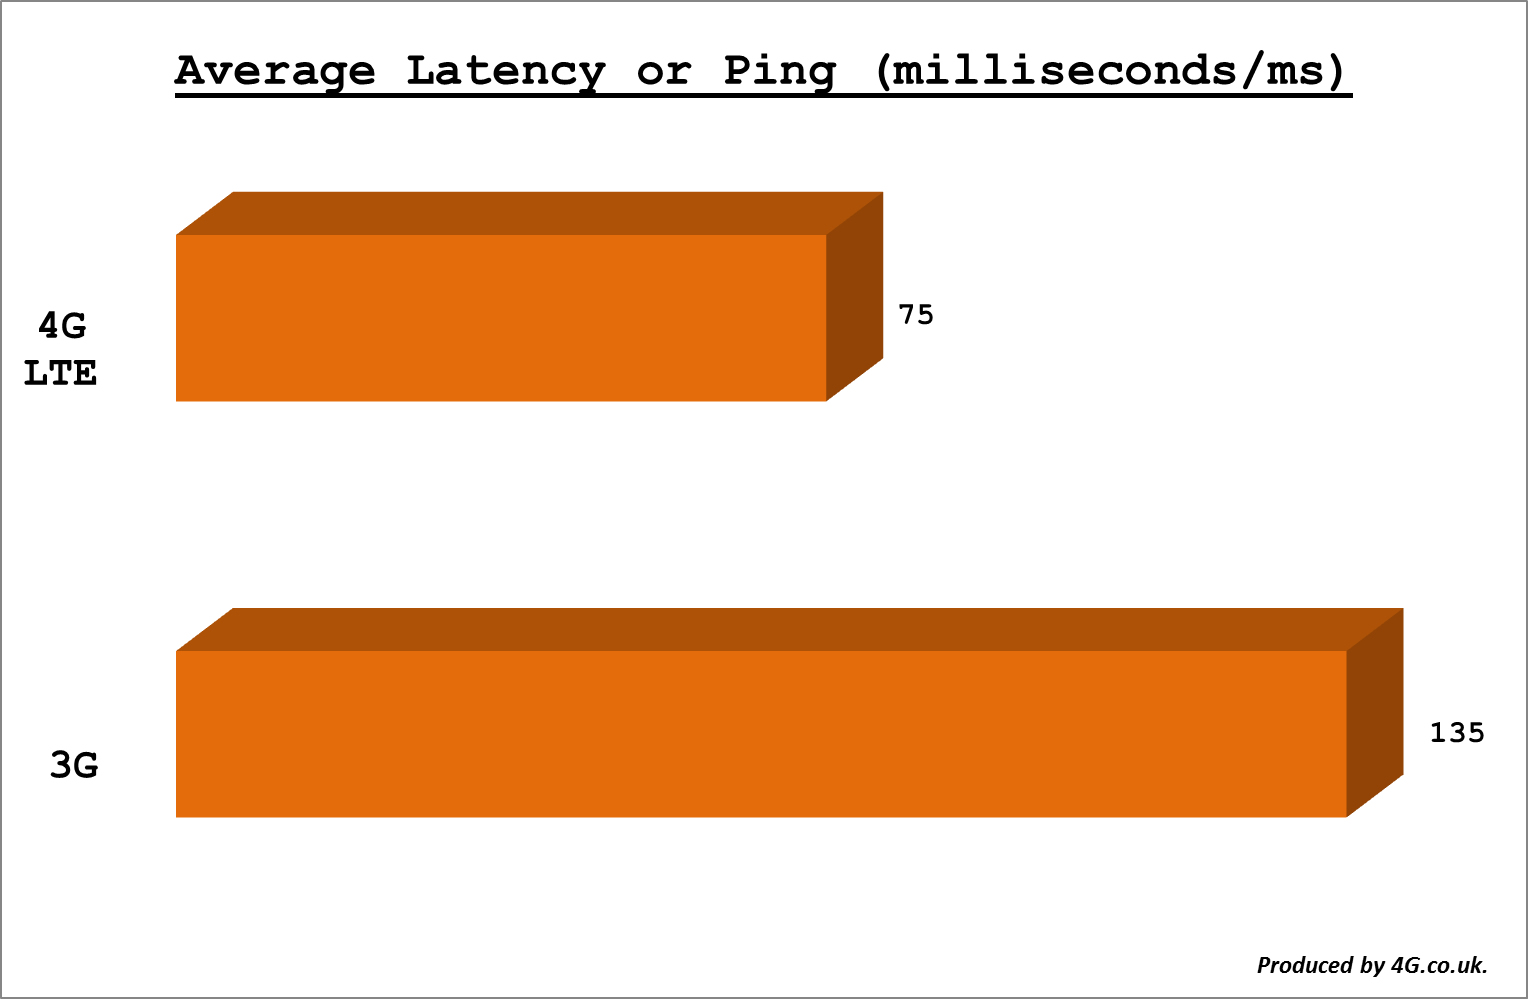 Average Latency Or Ping (3G and 4G LTE networks)